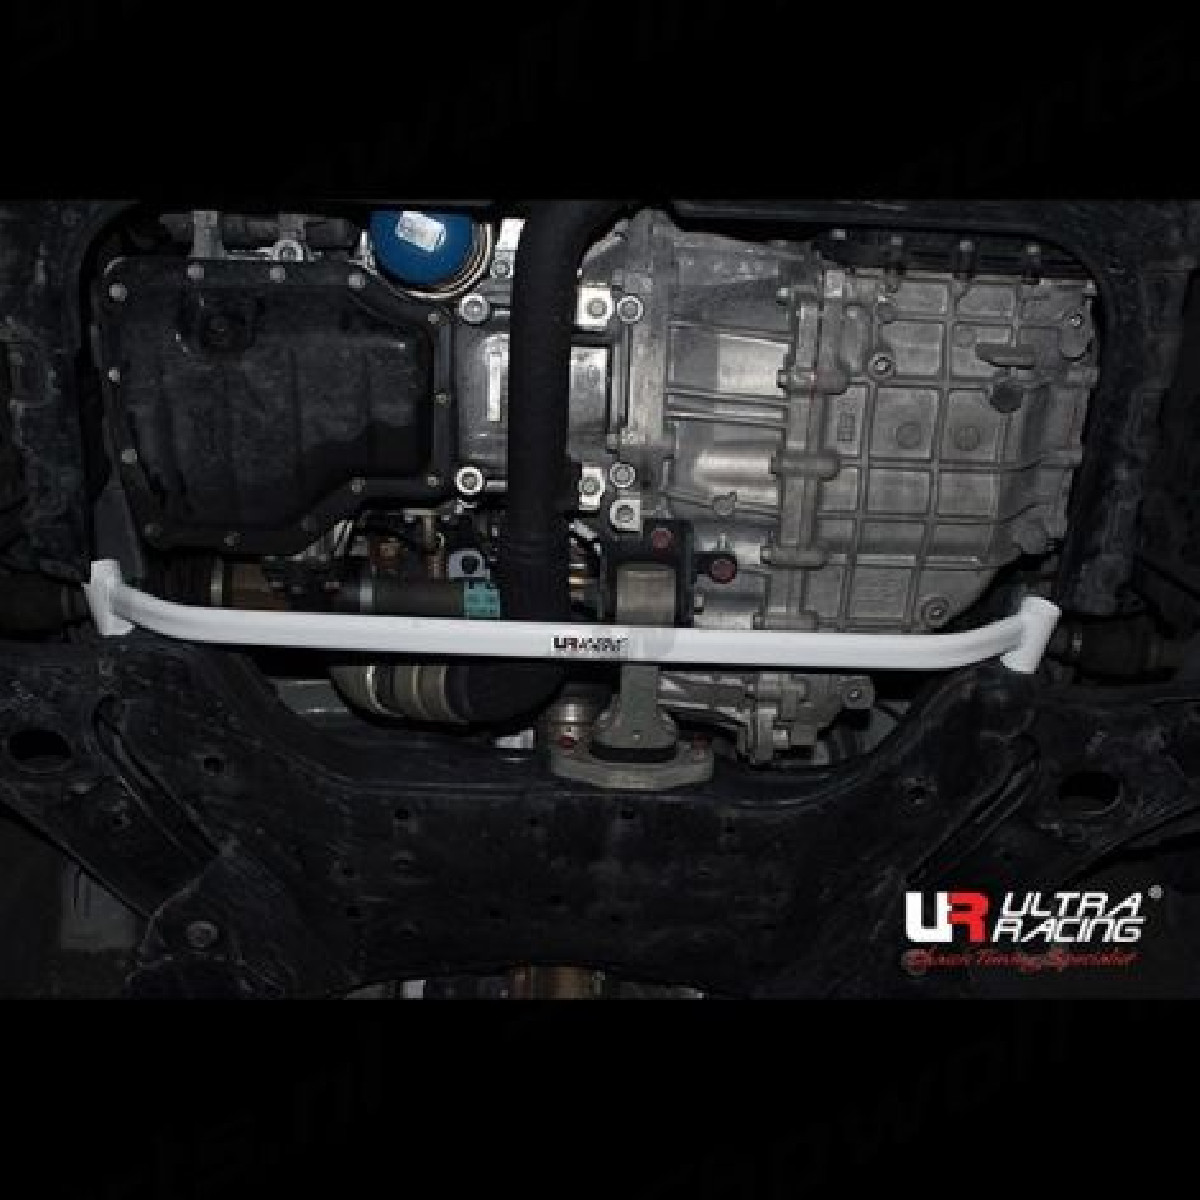 Hyundai Veloster 11+ UltraRacing 2P Front Lower Brace